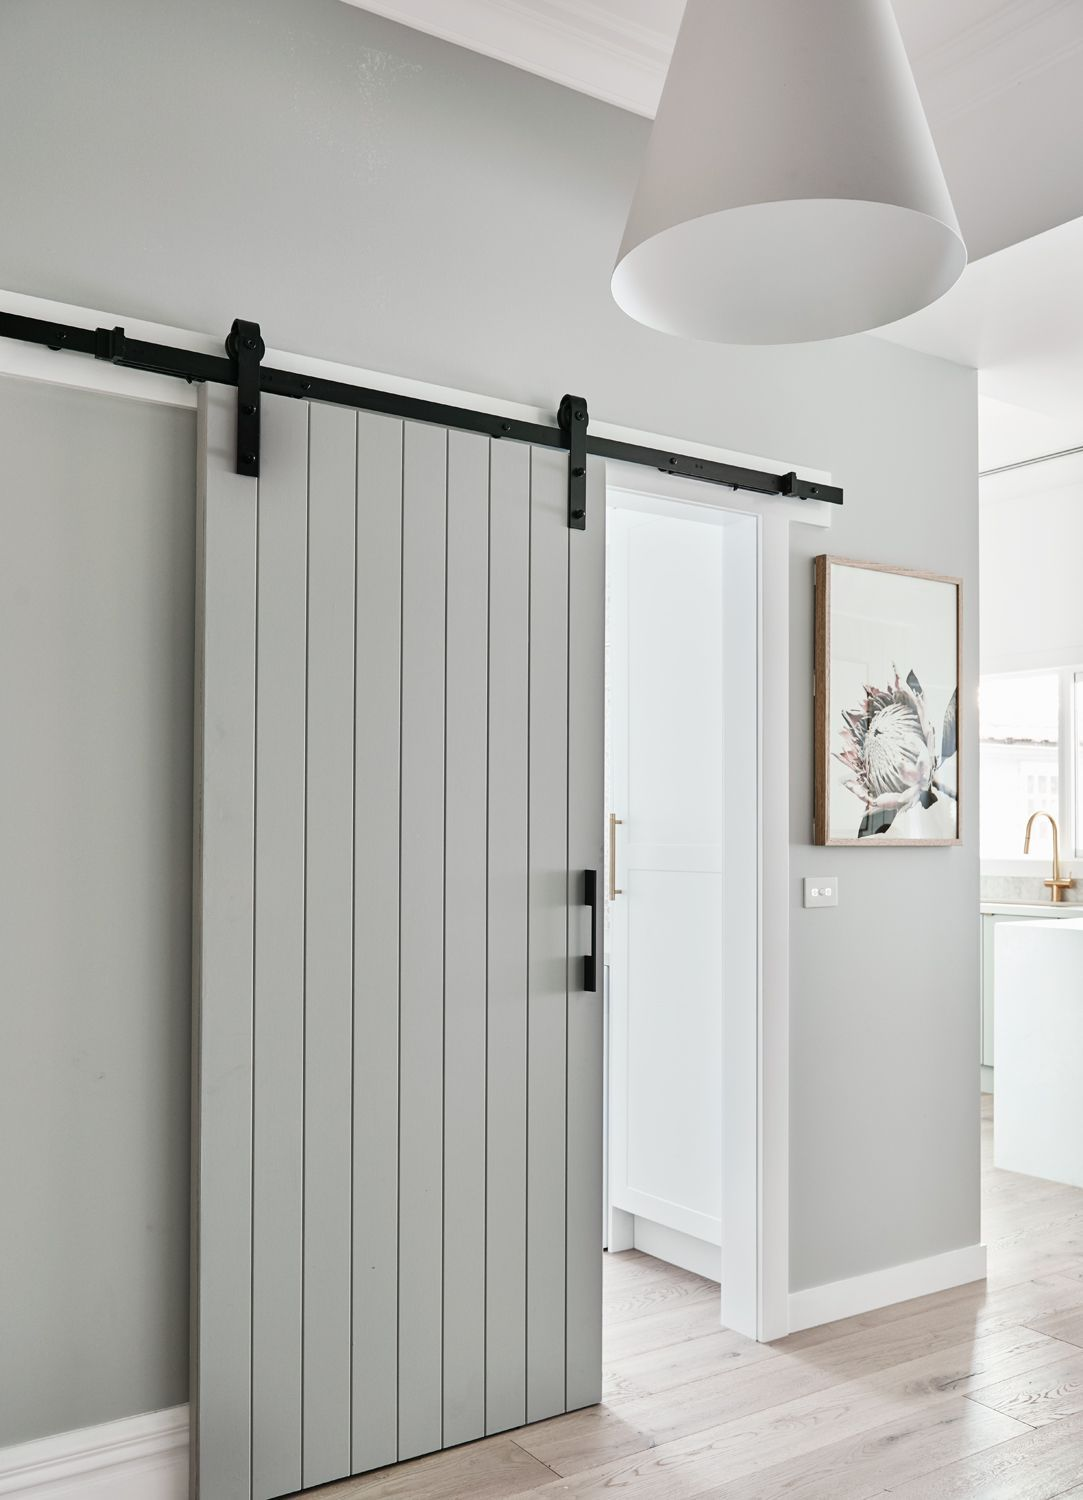 17 Design Ideas For Small Hallways Modern Barn Door Diy Sliding Barn Door Barn Door Kit